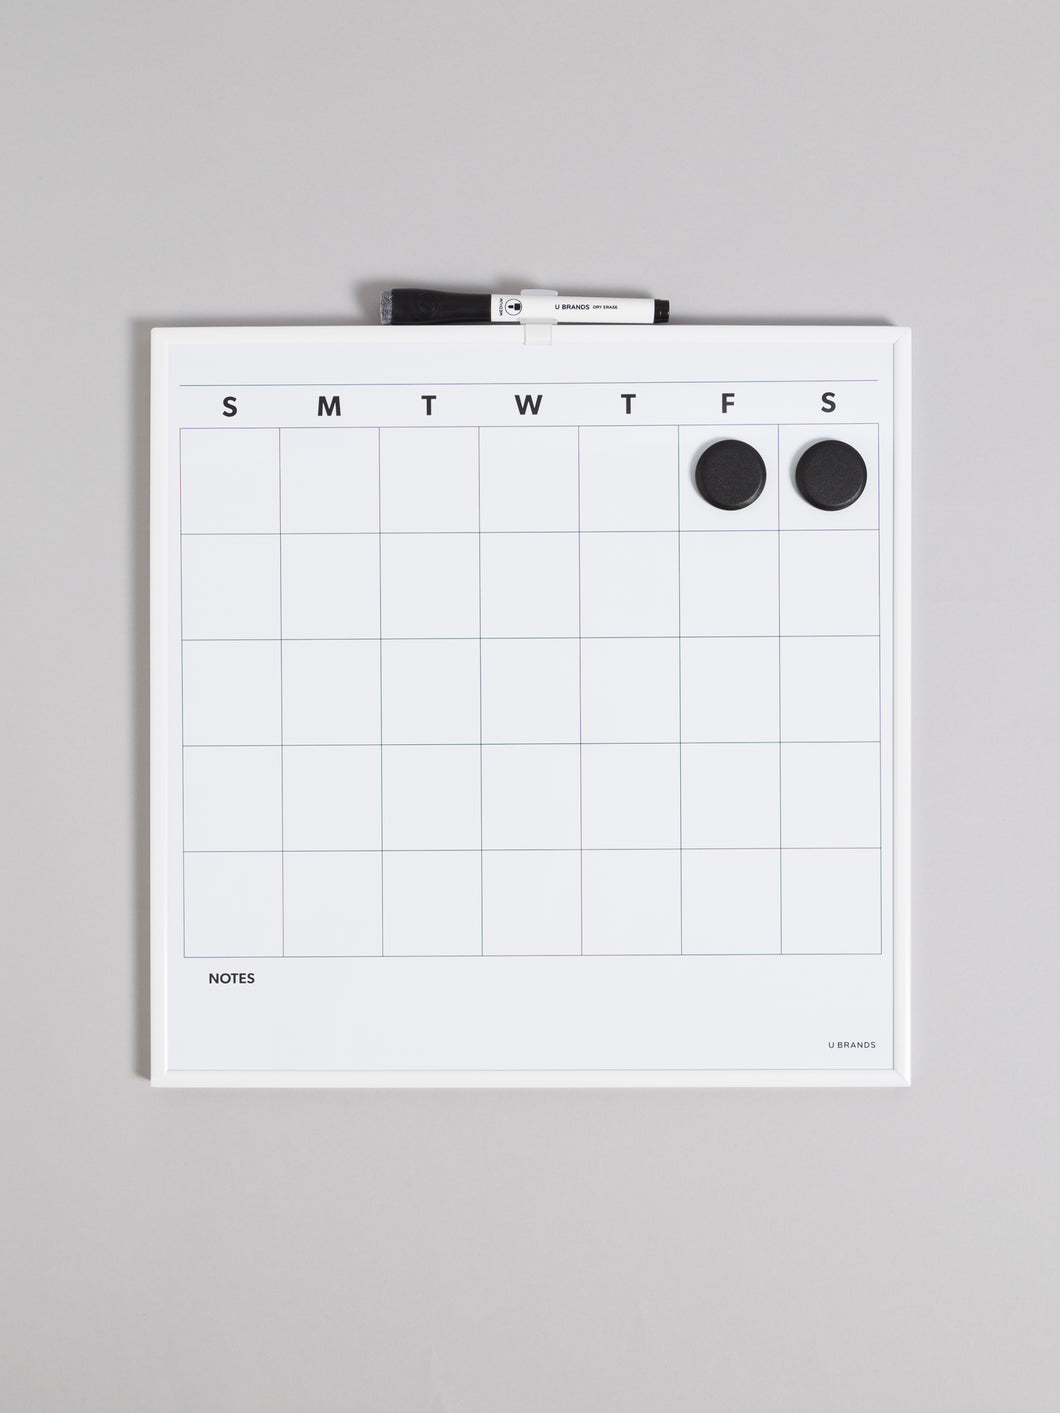 Aluminum/ metal framed squared dry erase calendar whiteboard. Included one bullet tip dry erase marker with a built-in felt eraser cap, one plastic marker clip to mount you marker directly to the board frame and two round black magnets to get your planning started. The dry erase monthly calendar surface features a notes section at the bottom for added convenience.